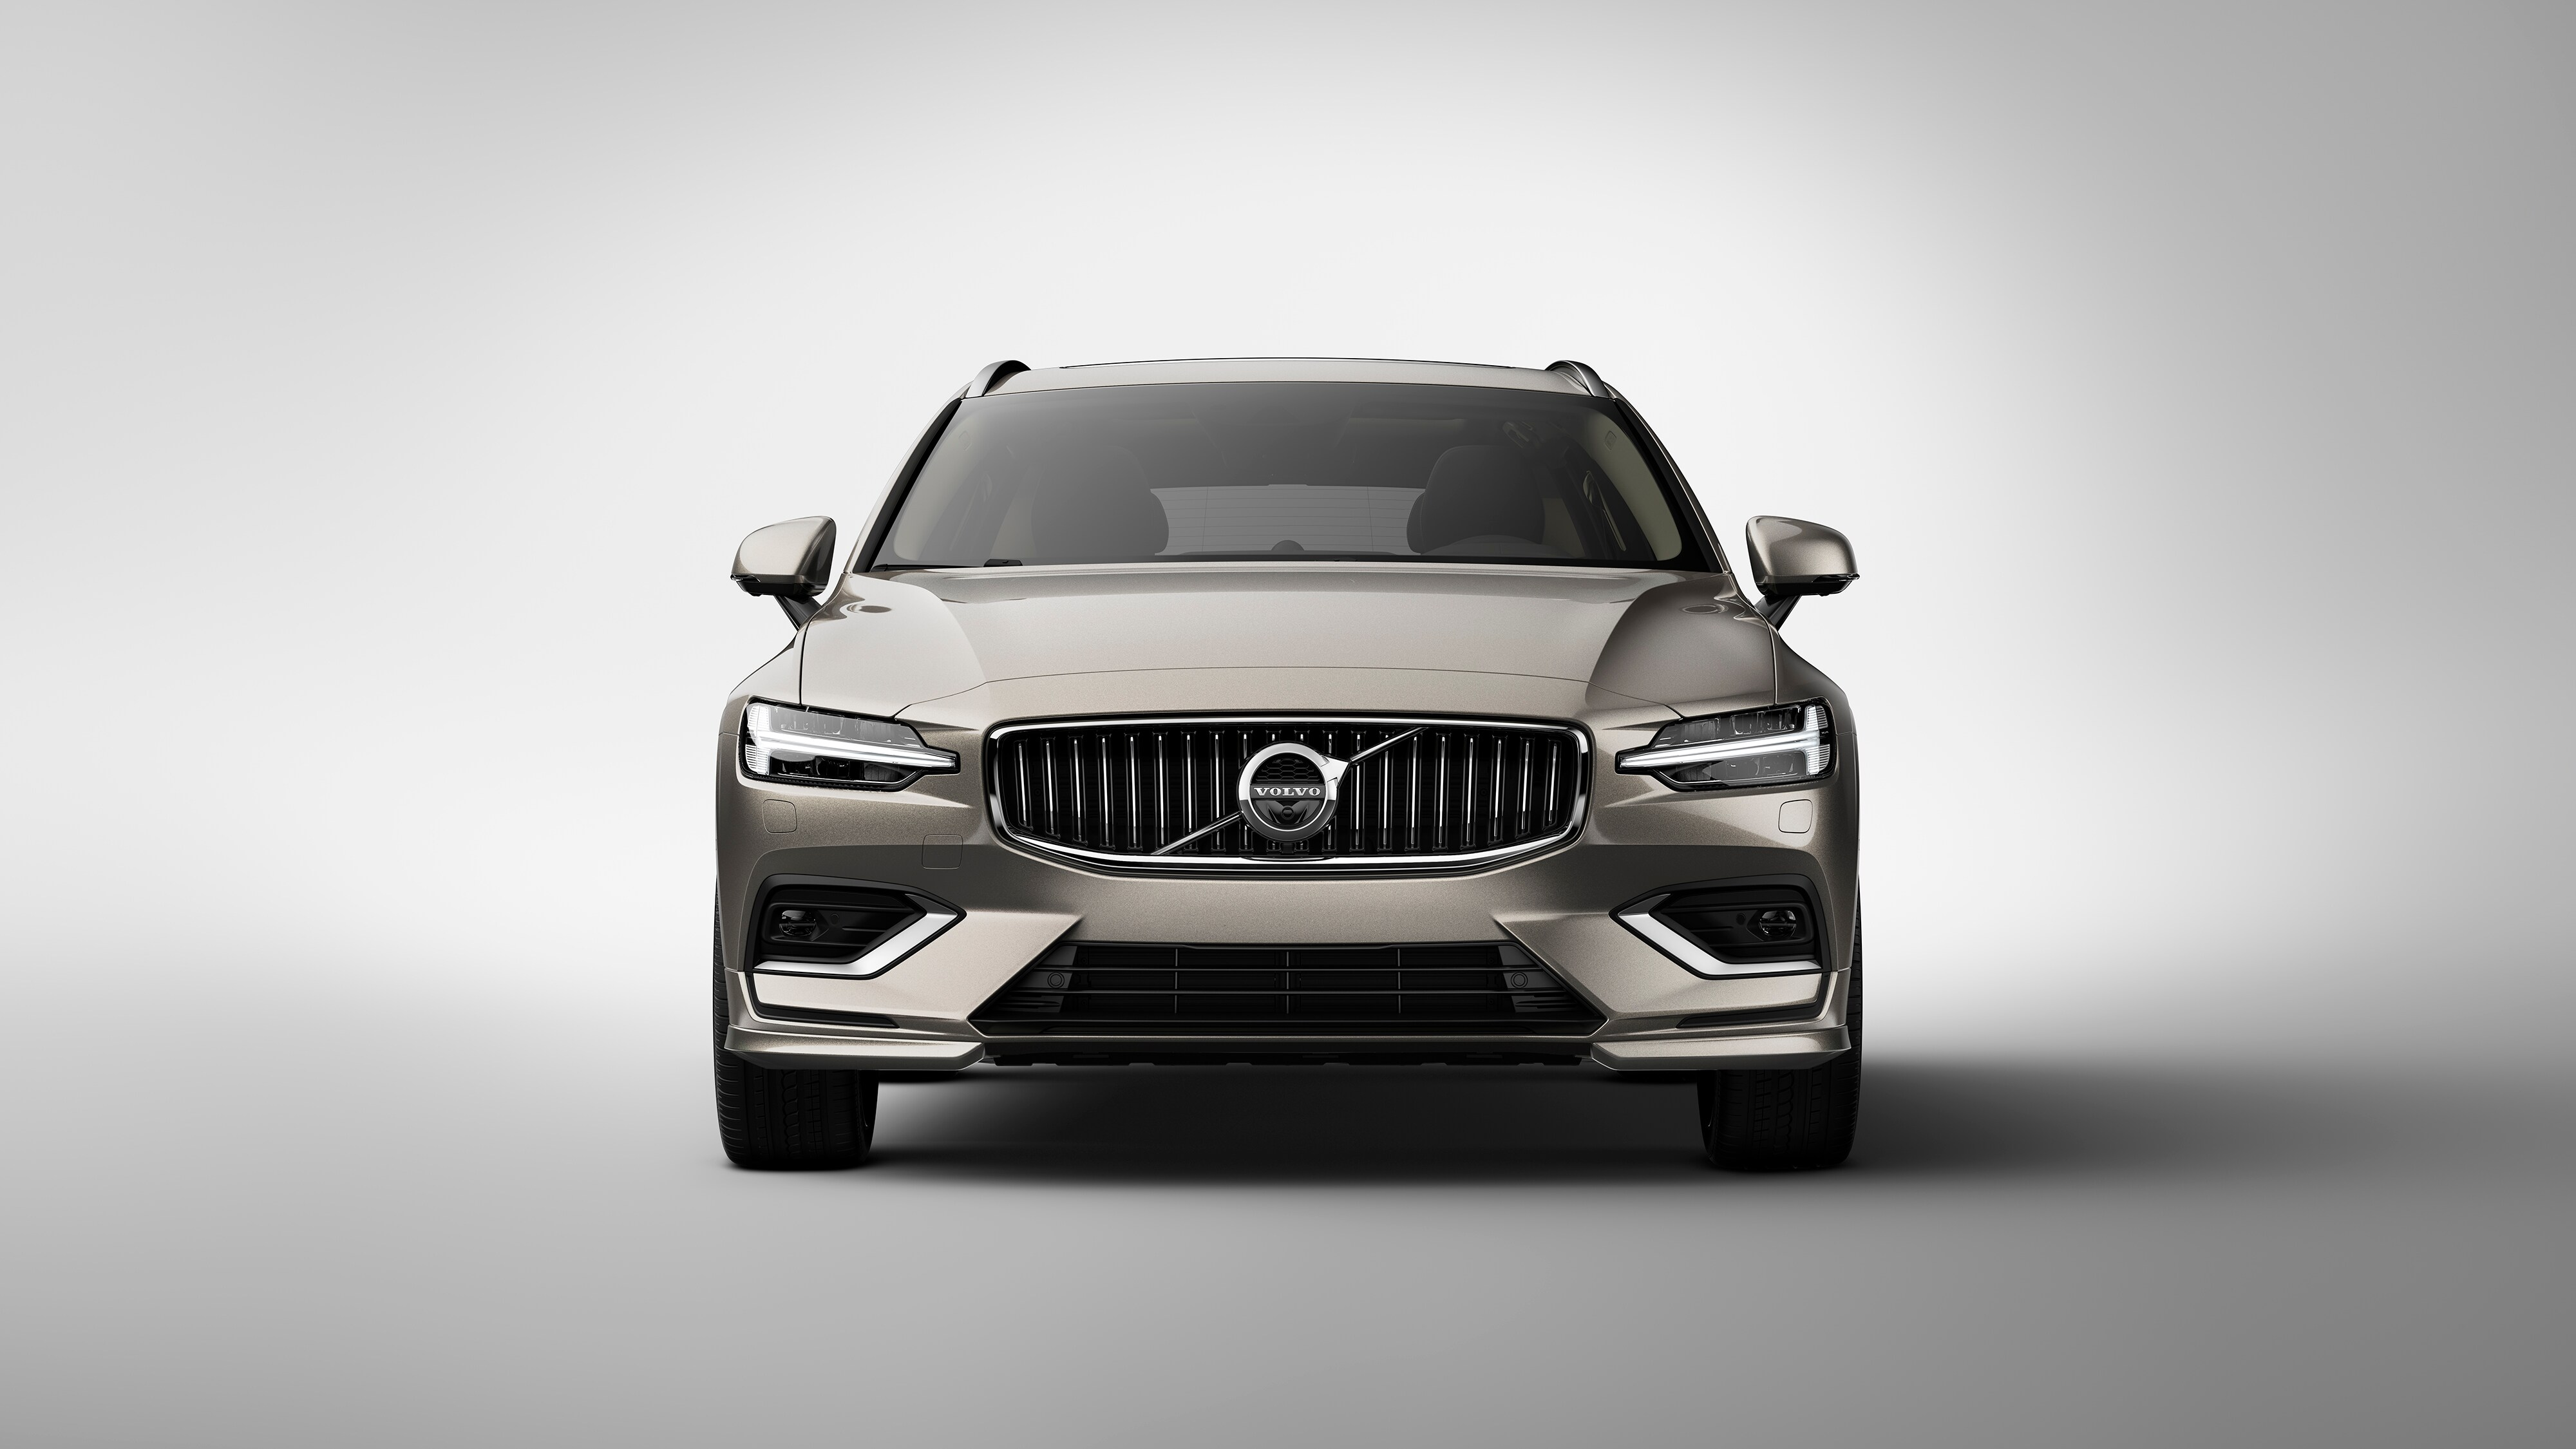 Accessories & Styling Options | V432 | Volvo Cars